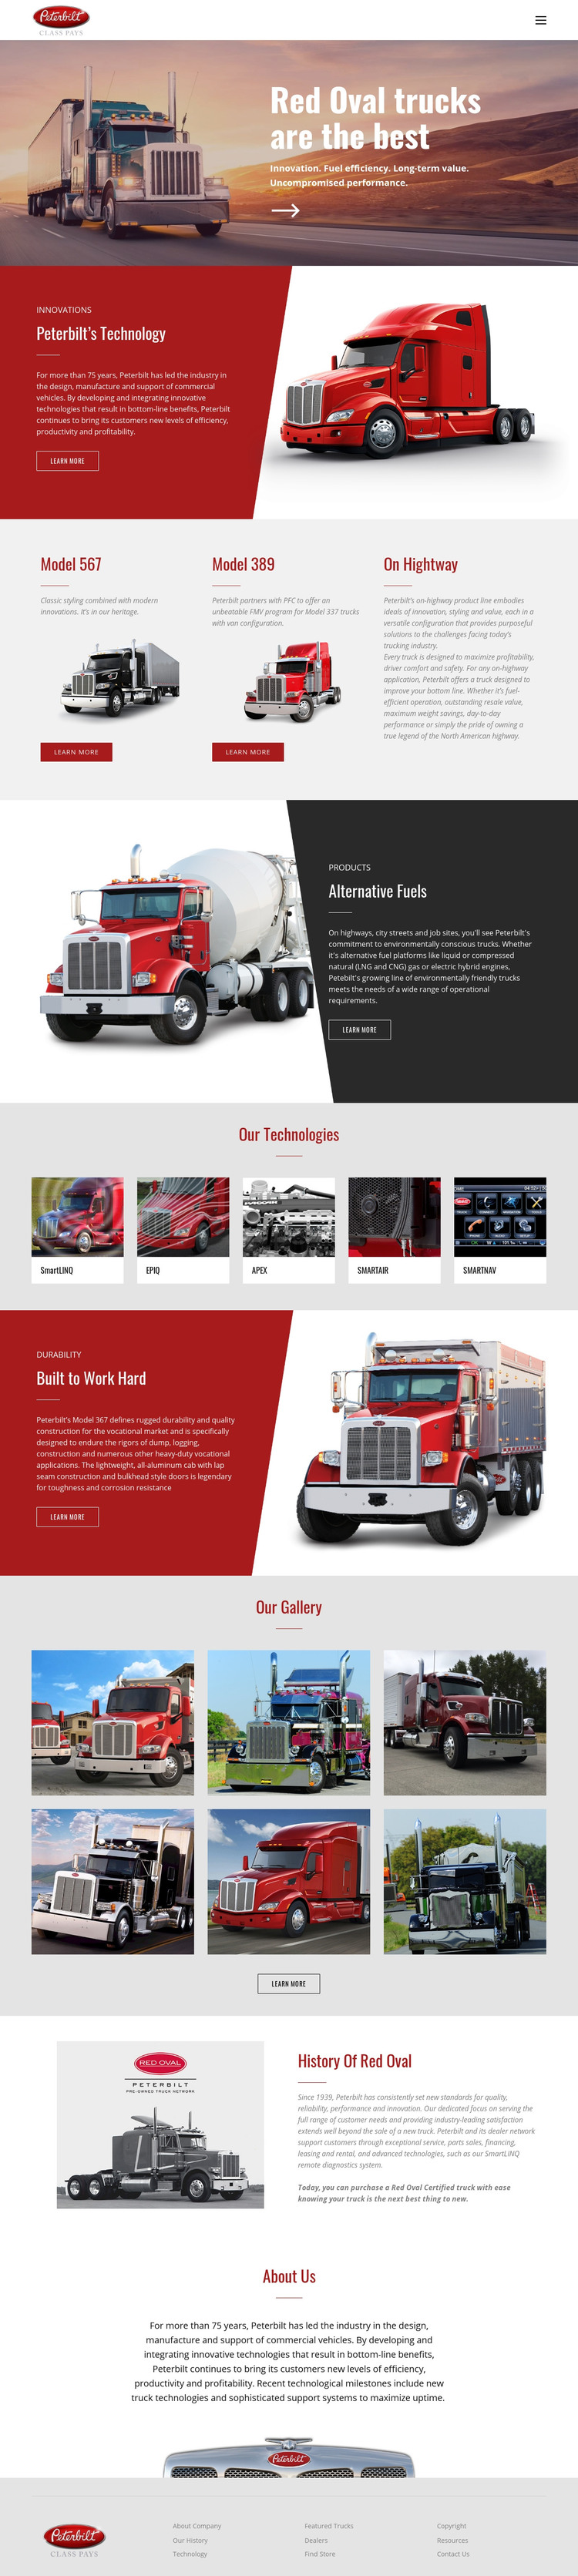 Red oval truck transportaion Homepage Design